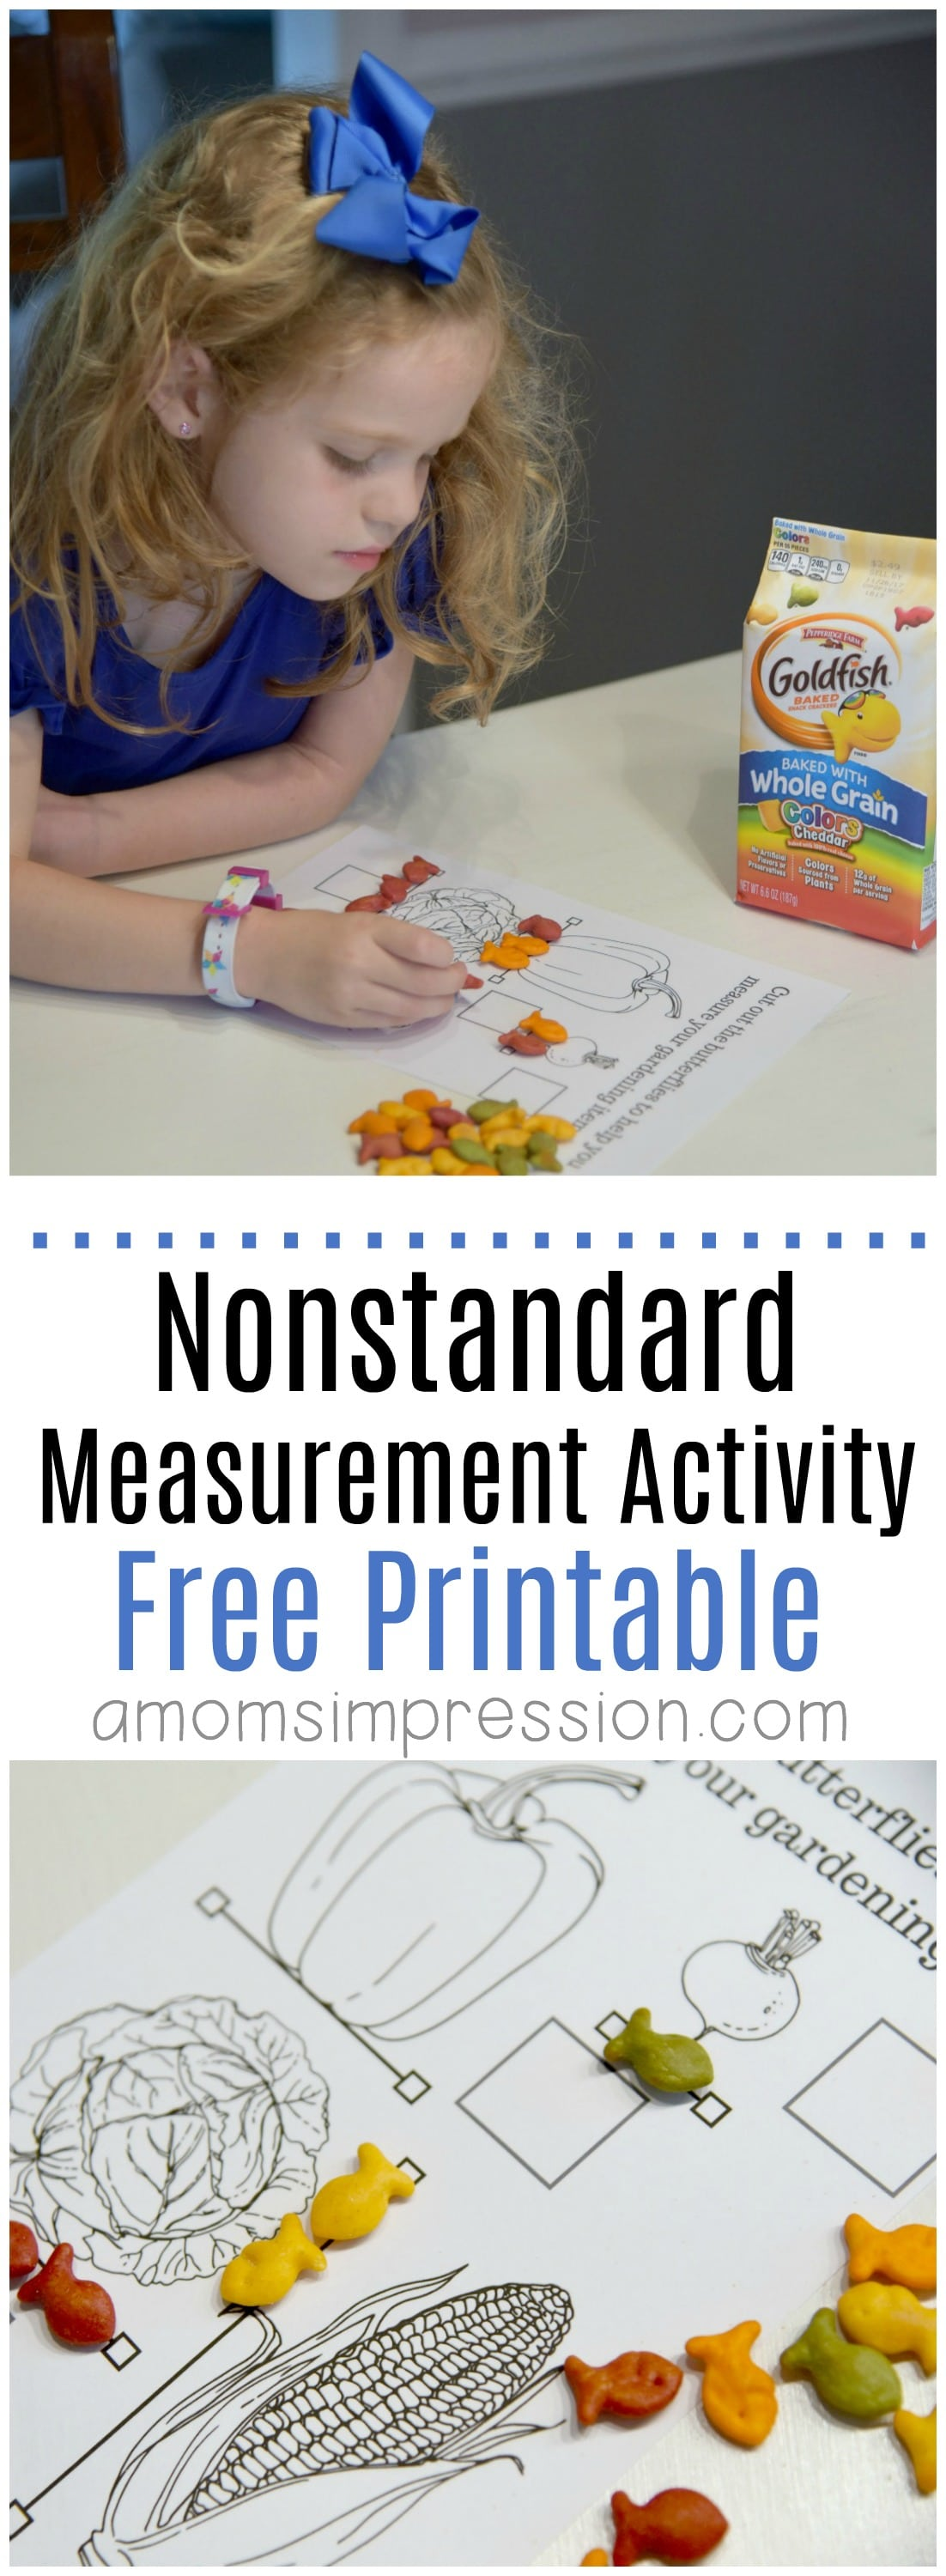 Having Fun With Nonstandard Measurement Plus Free Printable